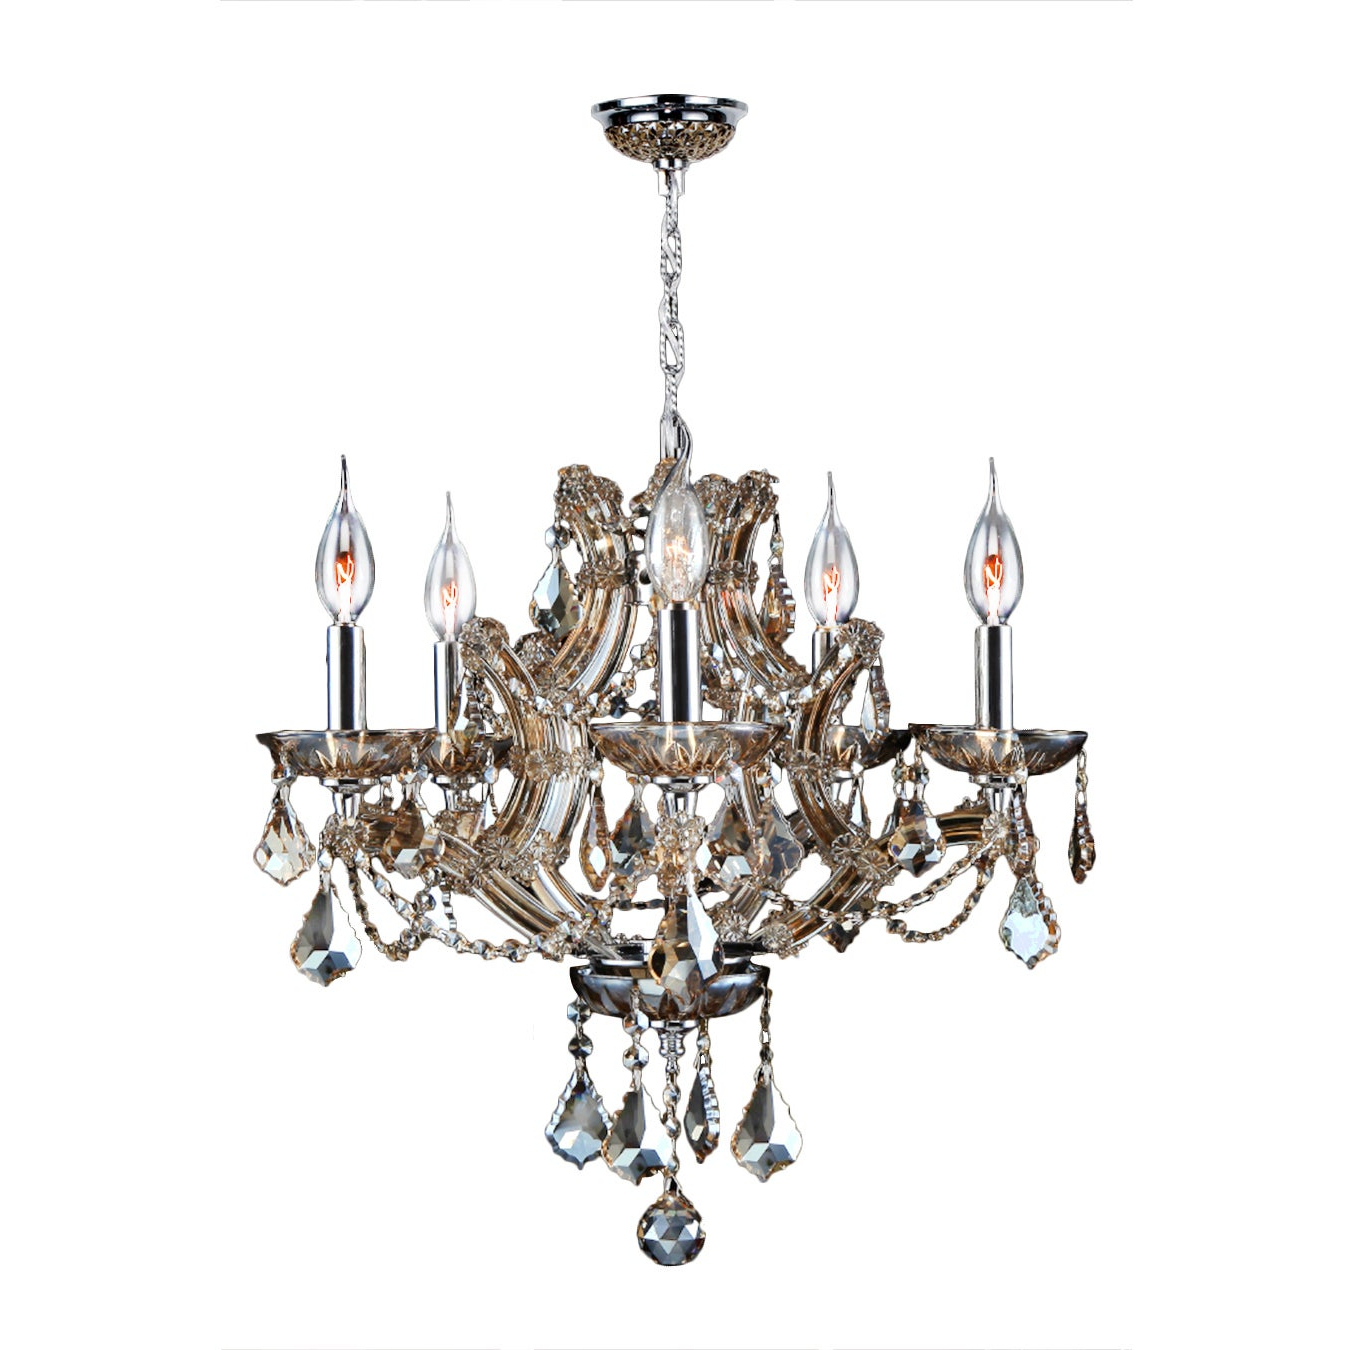 Thresa 5 Light Shaded Chandeliers Pertaining To Most Recently Released Maria Theresa 5 Light Golden Teak Crystal Glam Chandelier Medium 19 In. W X  18 In (View 3 of 20)